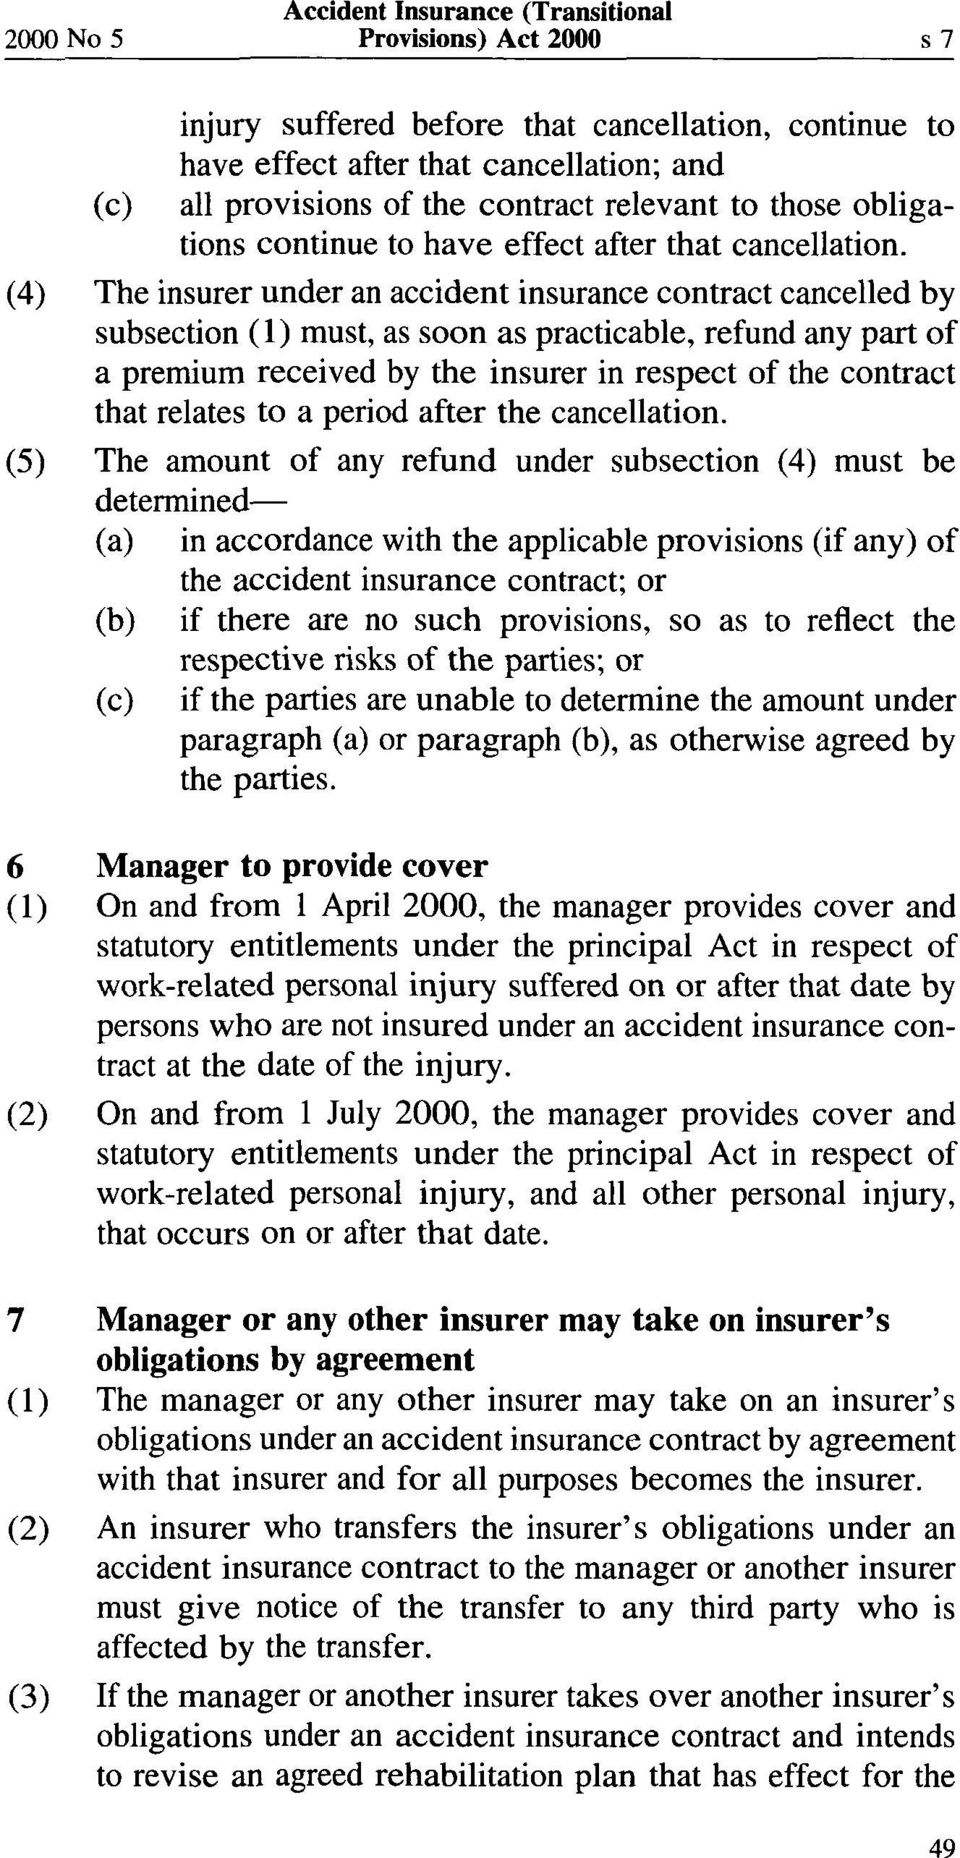 (4) The insurer under an accident insurance contract cancelled by subsection (1) must, as soon as practicable, refund any part of a premium received by the insurer in respect of the contract that